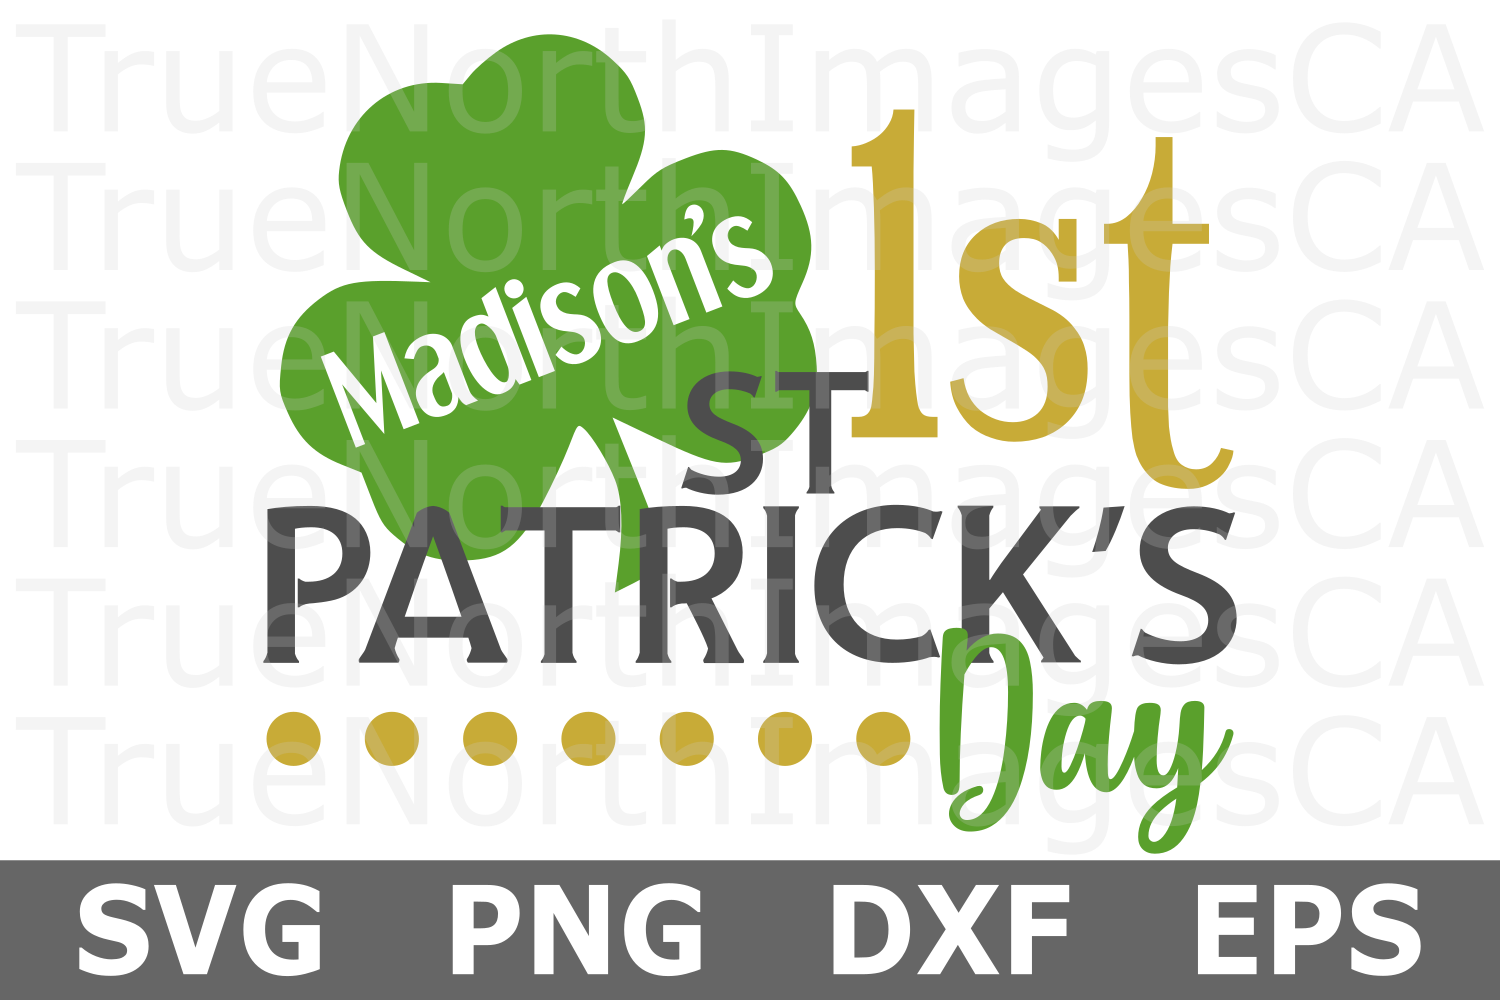 Personal 1st St Patricks Day - St Patricks Day SVG Cut File example image 1